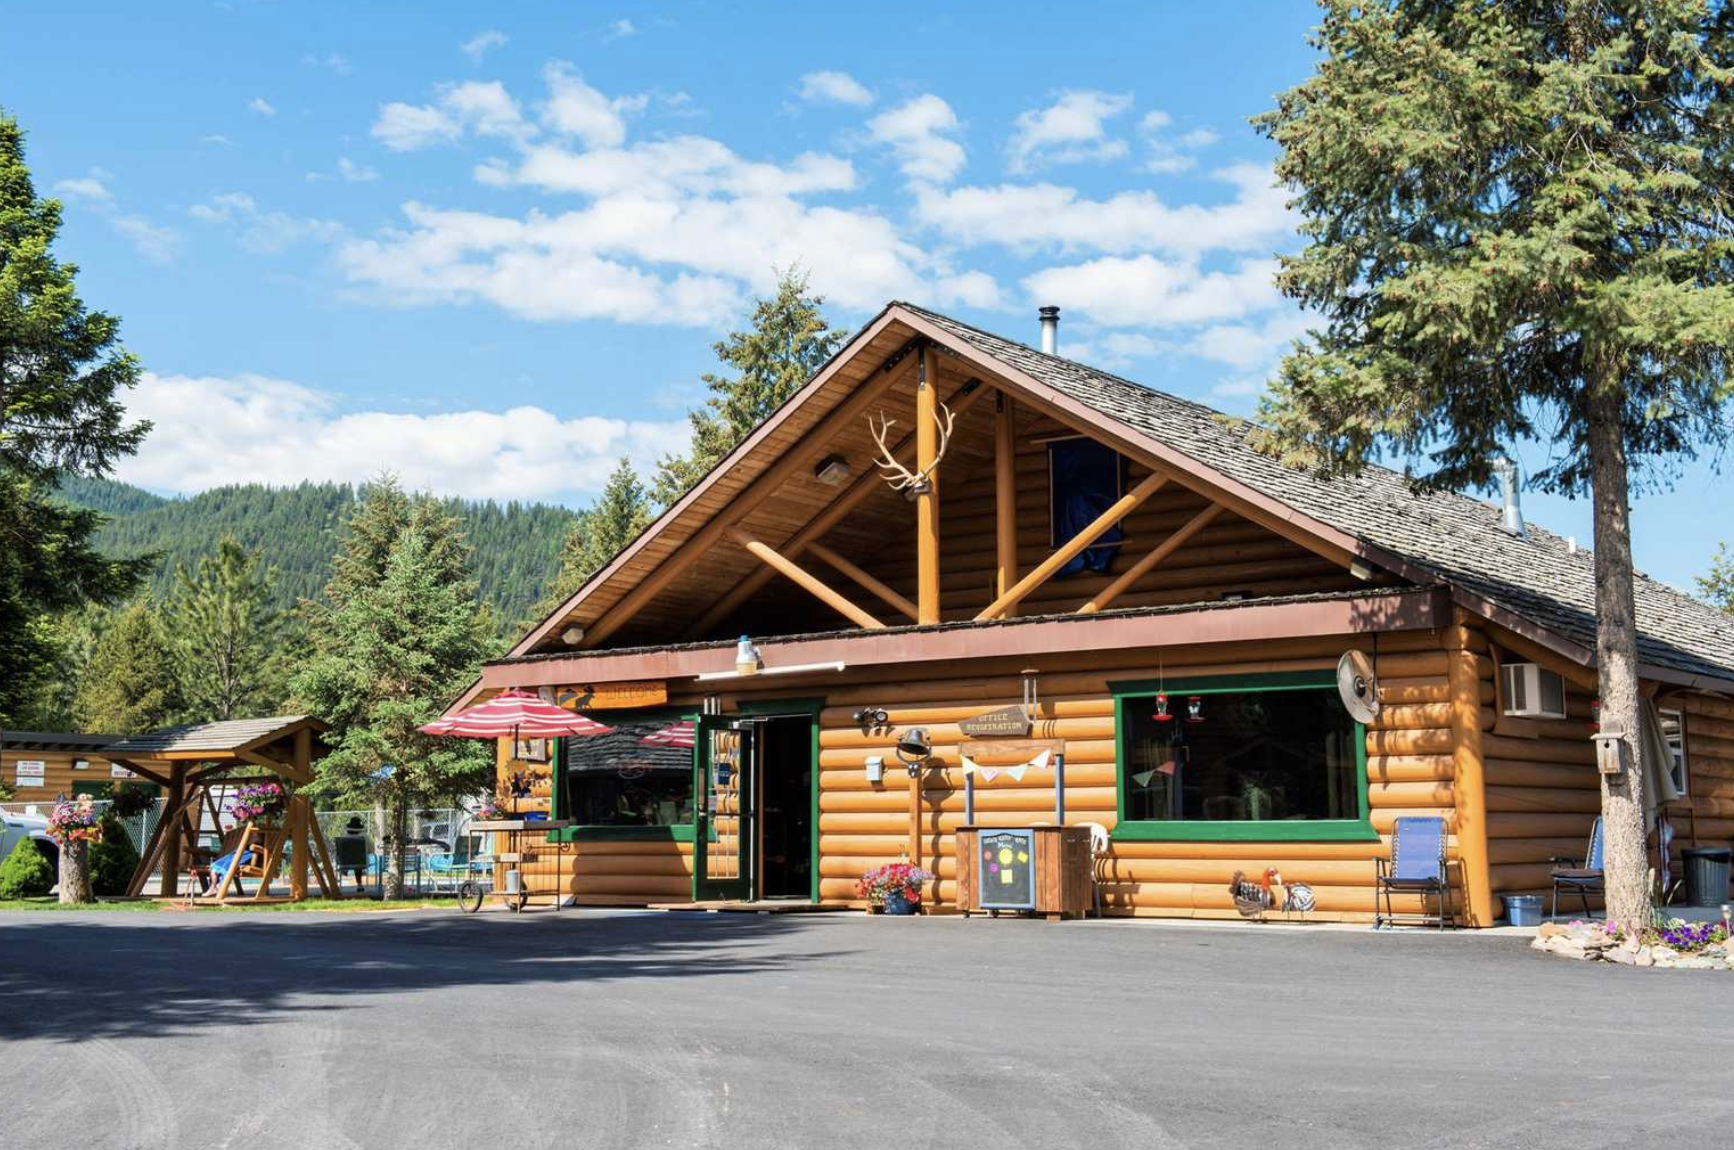 Log cabin general store at campground